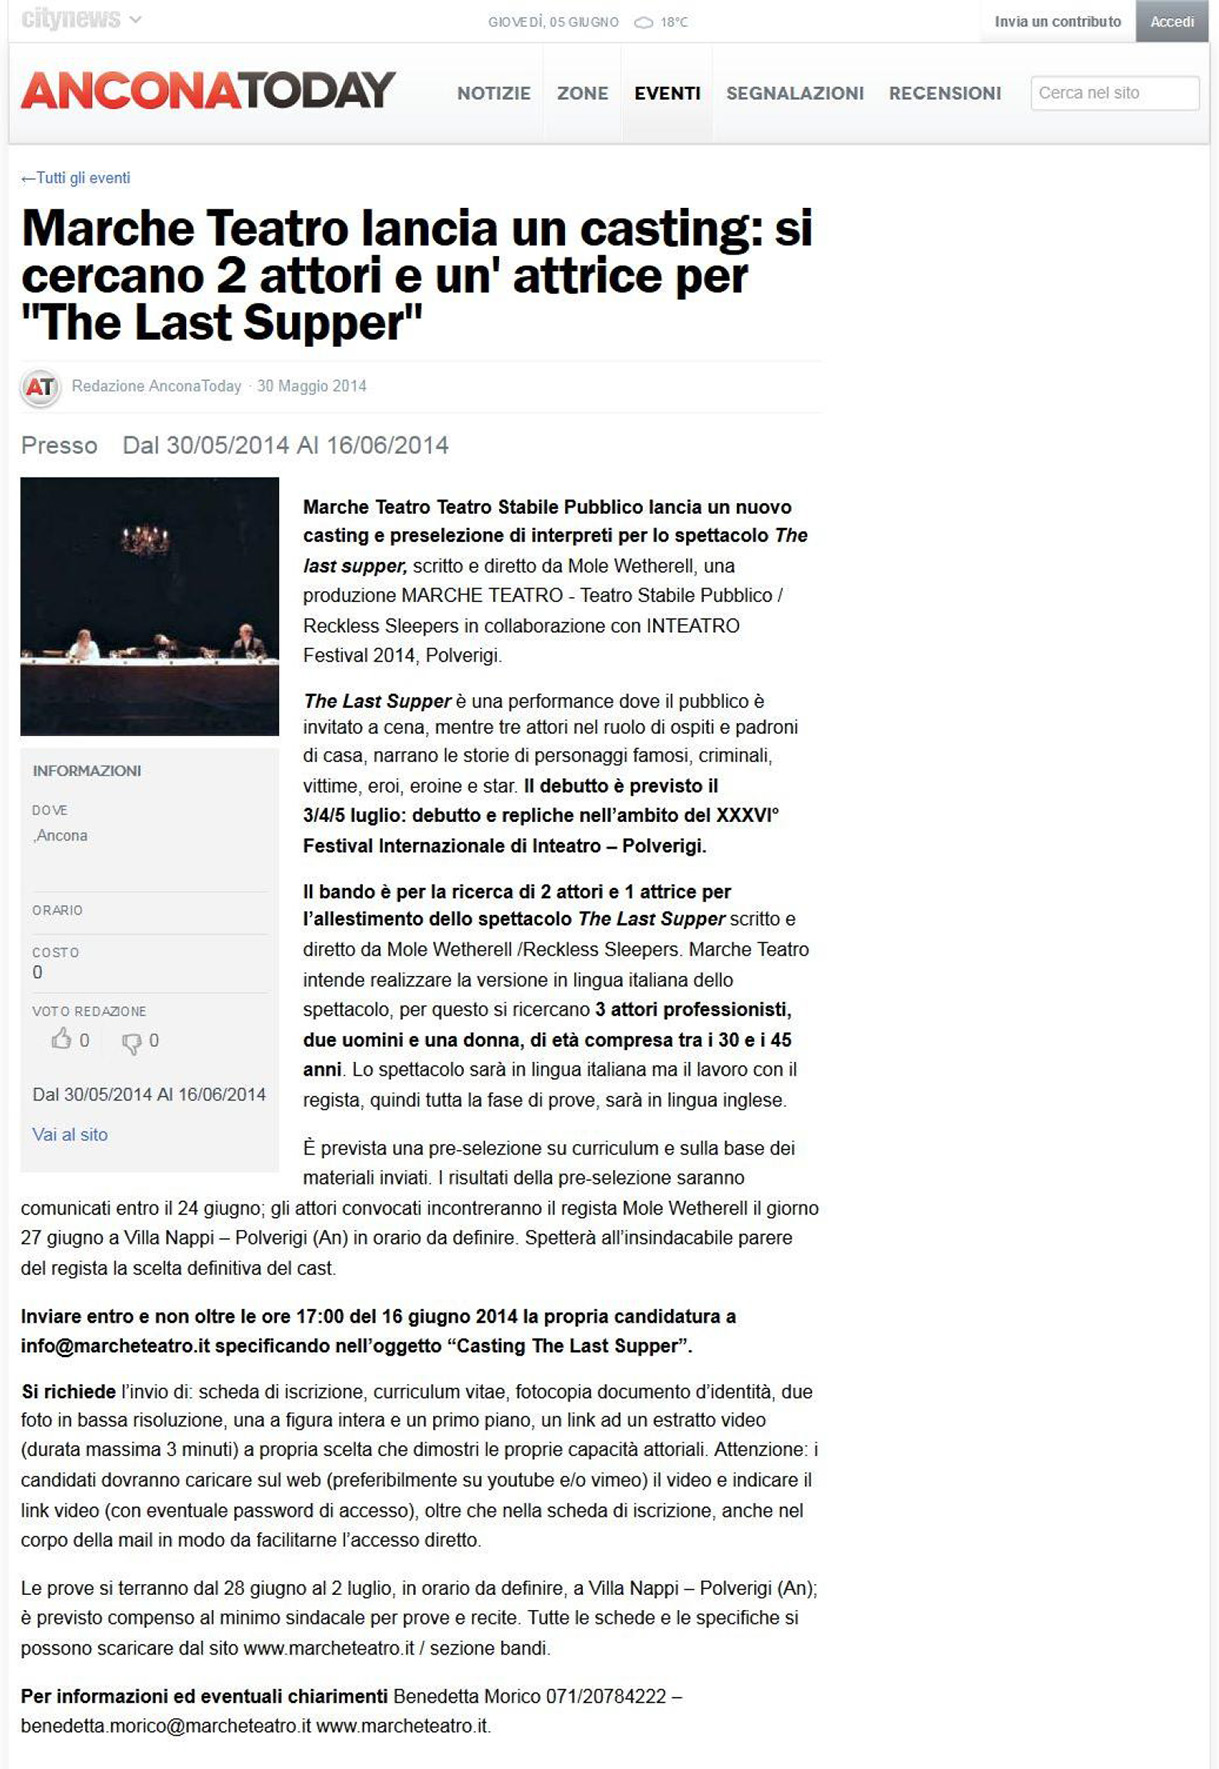 2014.05.30 Si cercano 2 attori e un'attrice per 'The Last Supper' - anconatoday.it